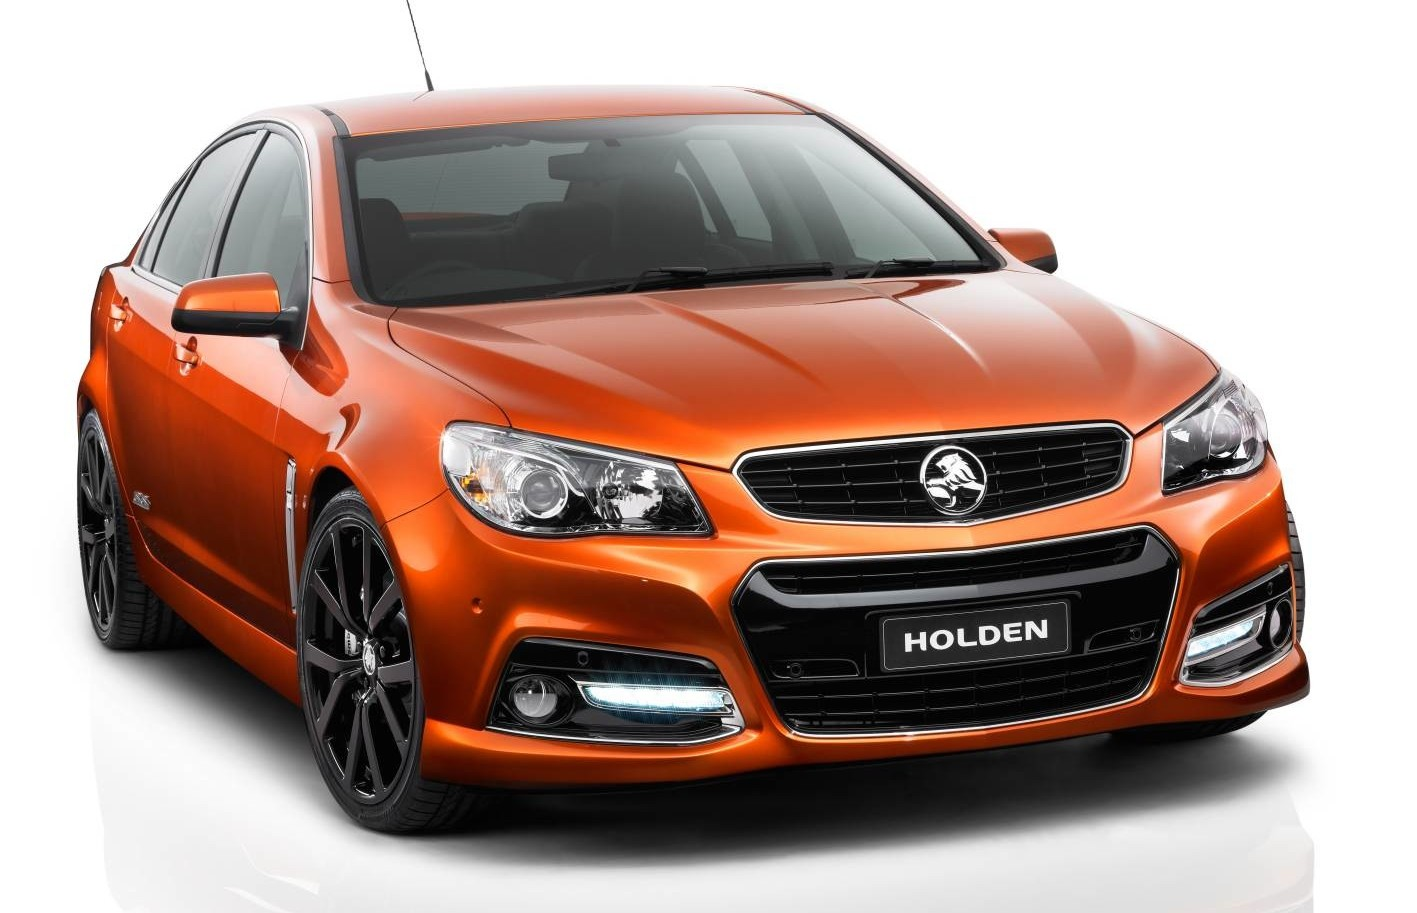 Holden Vf Commodore To Get Overhauled Autos Quicker Steering Photos 1 Of 4